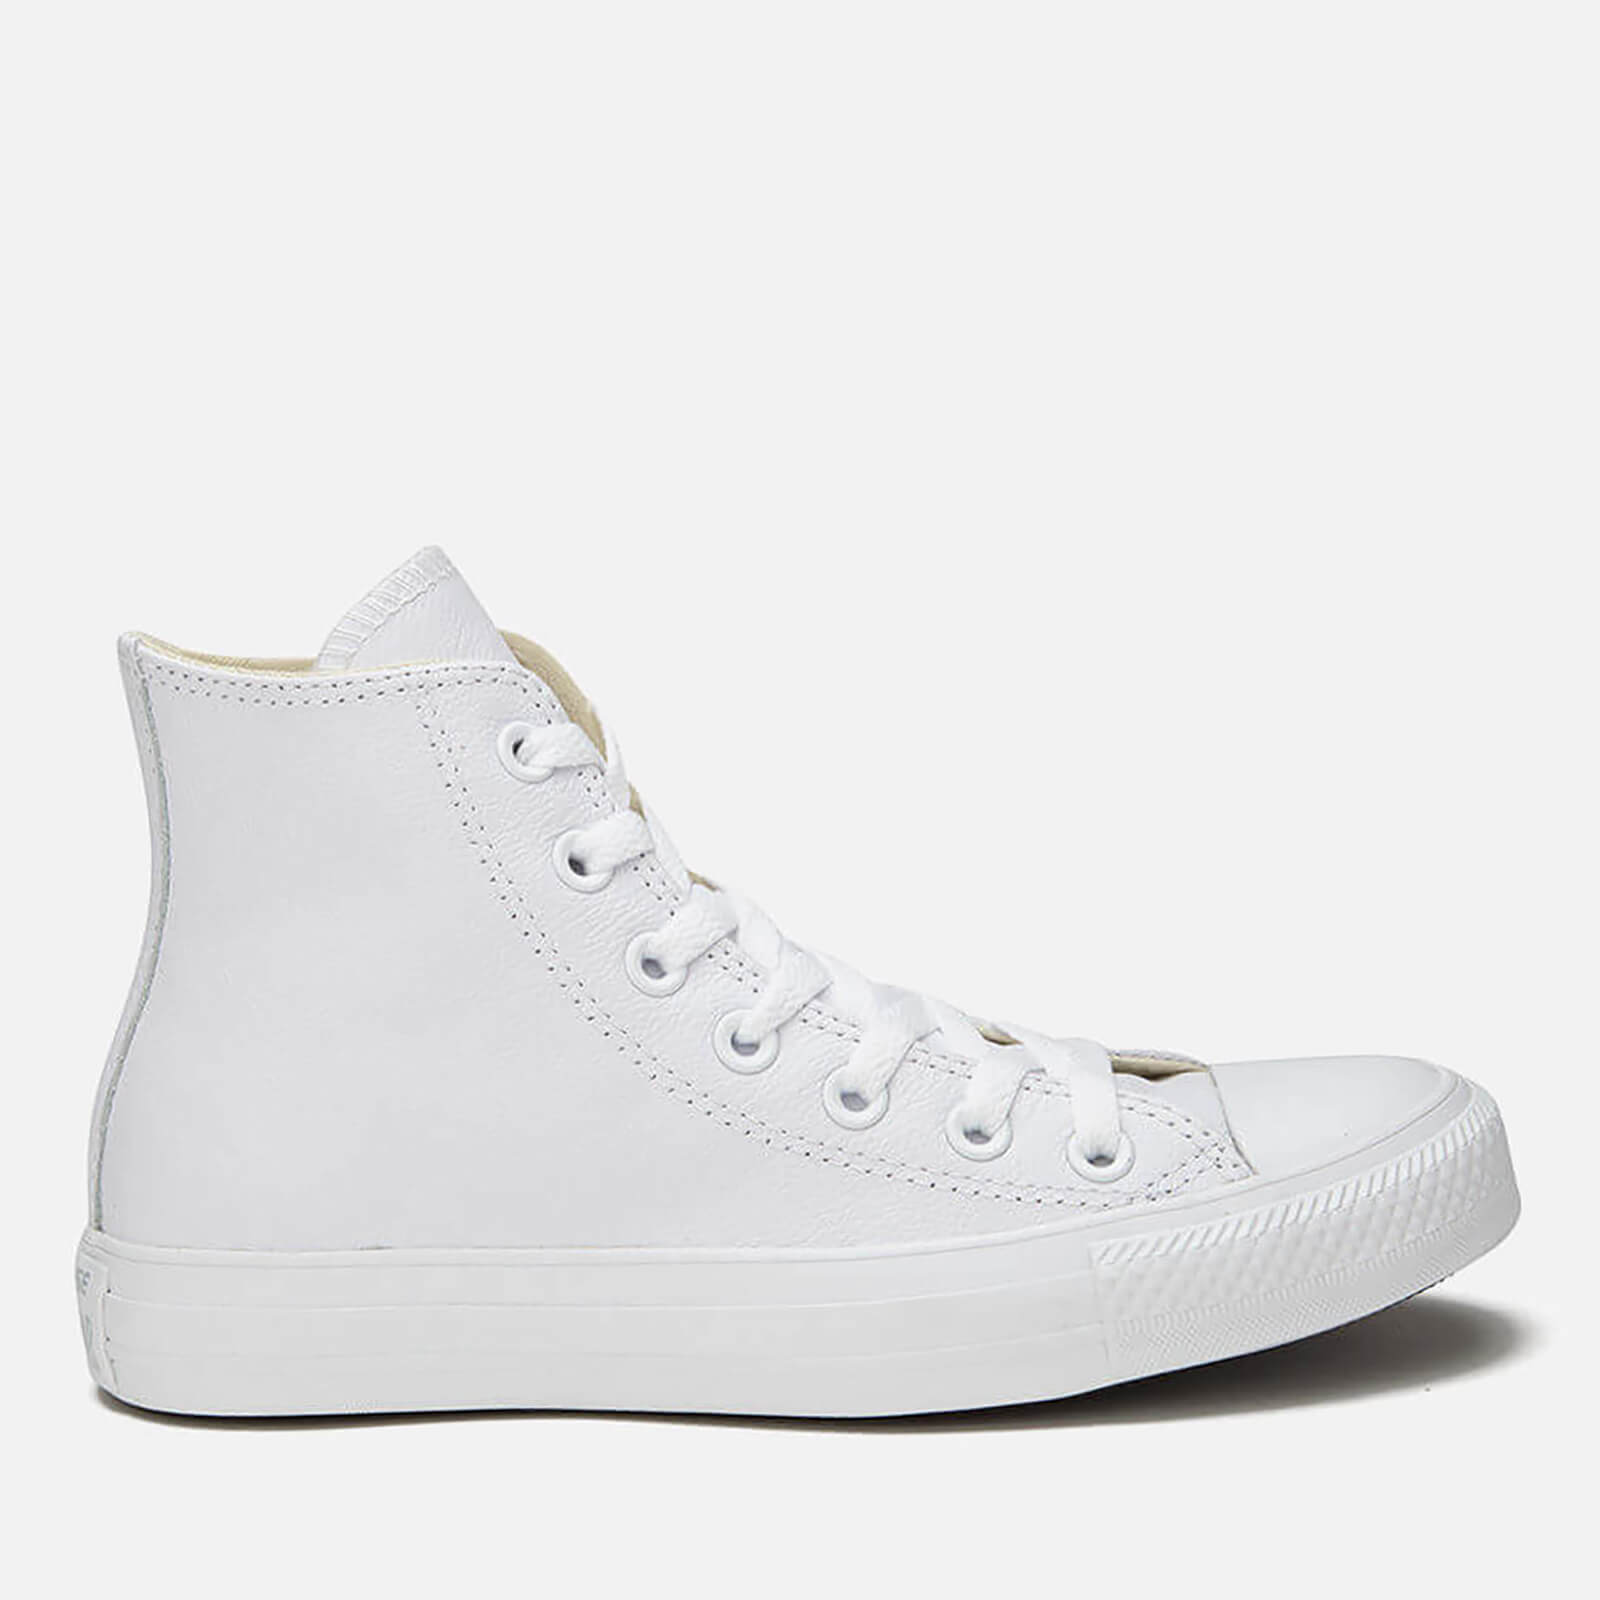 542b48dc3a6ee Converse Unisex Chuck Taylor All Star Leather Hi-Top Trainers - White  Monochrome